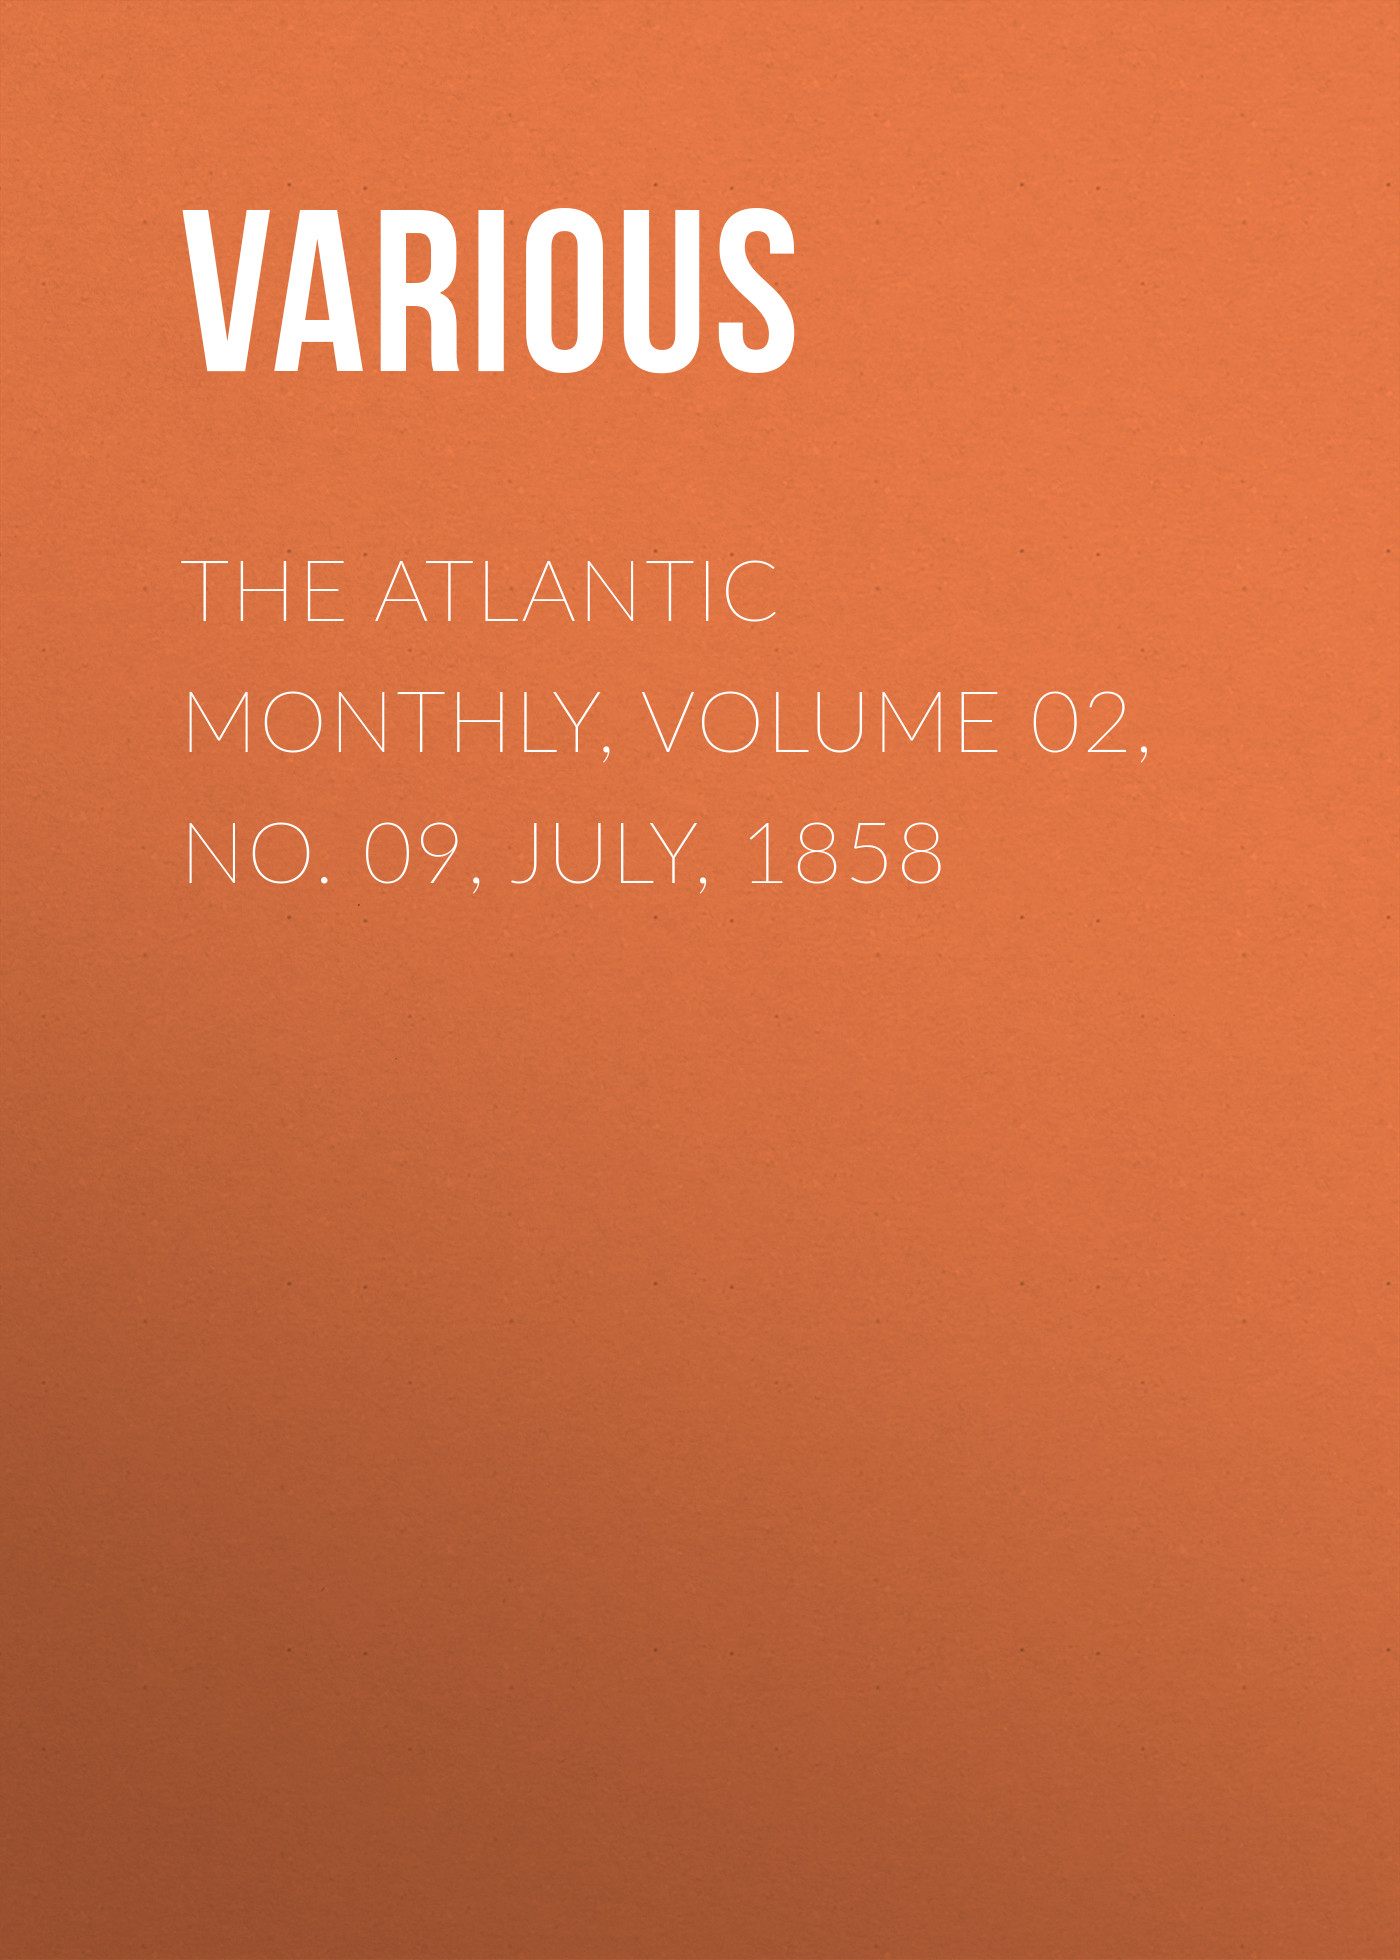 Various The Atlantic Monthly, Volume 02, No. 09, July, 1858 various the atlantic monthly volume 02 no 10 august 1858